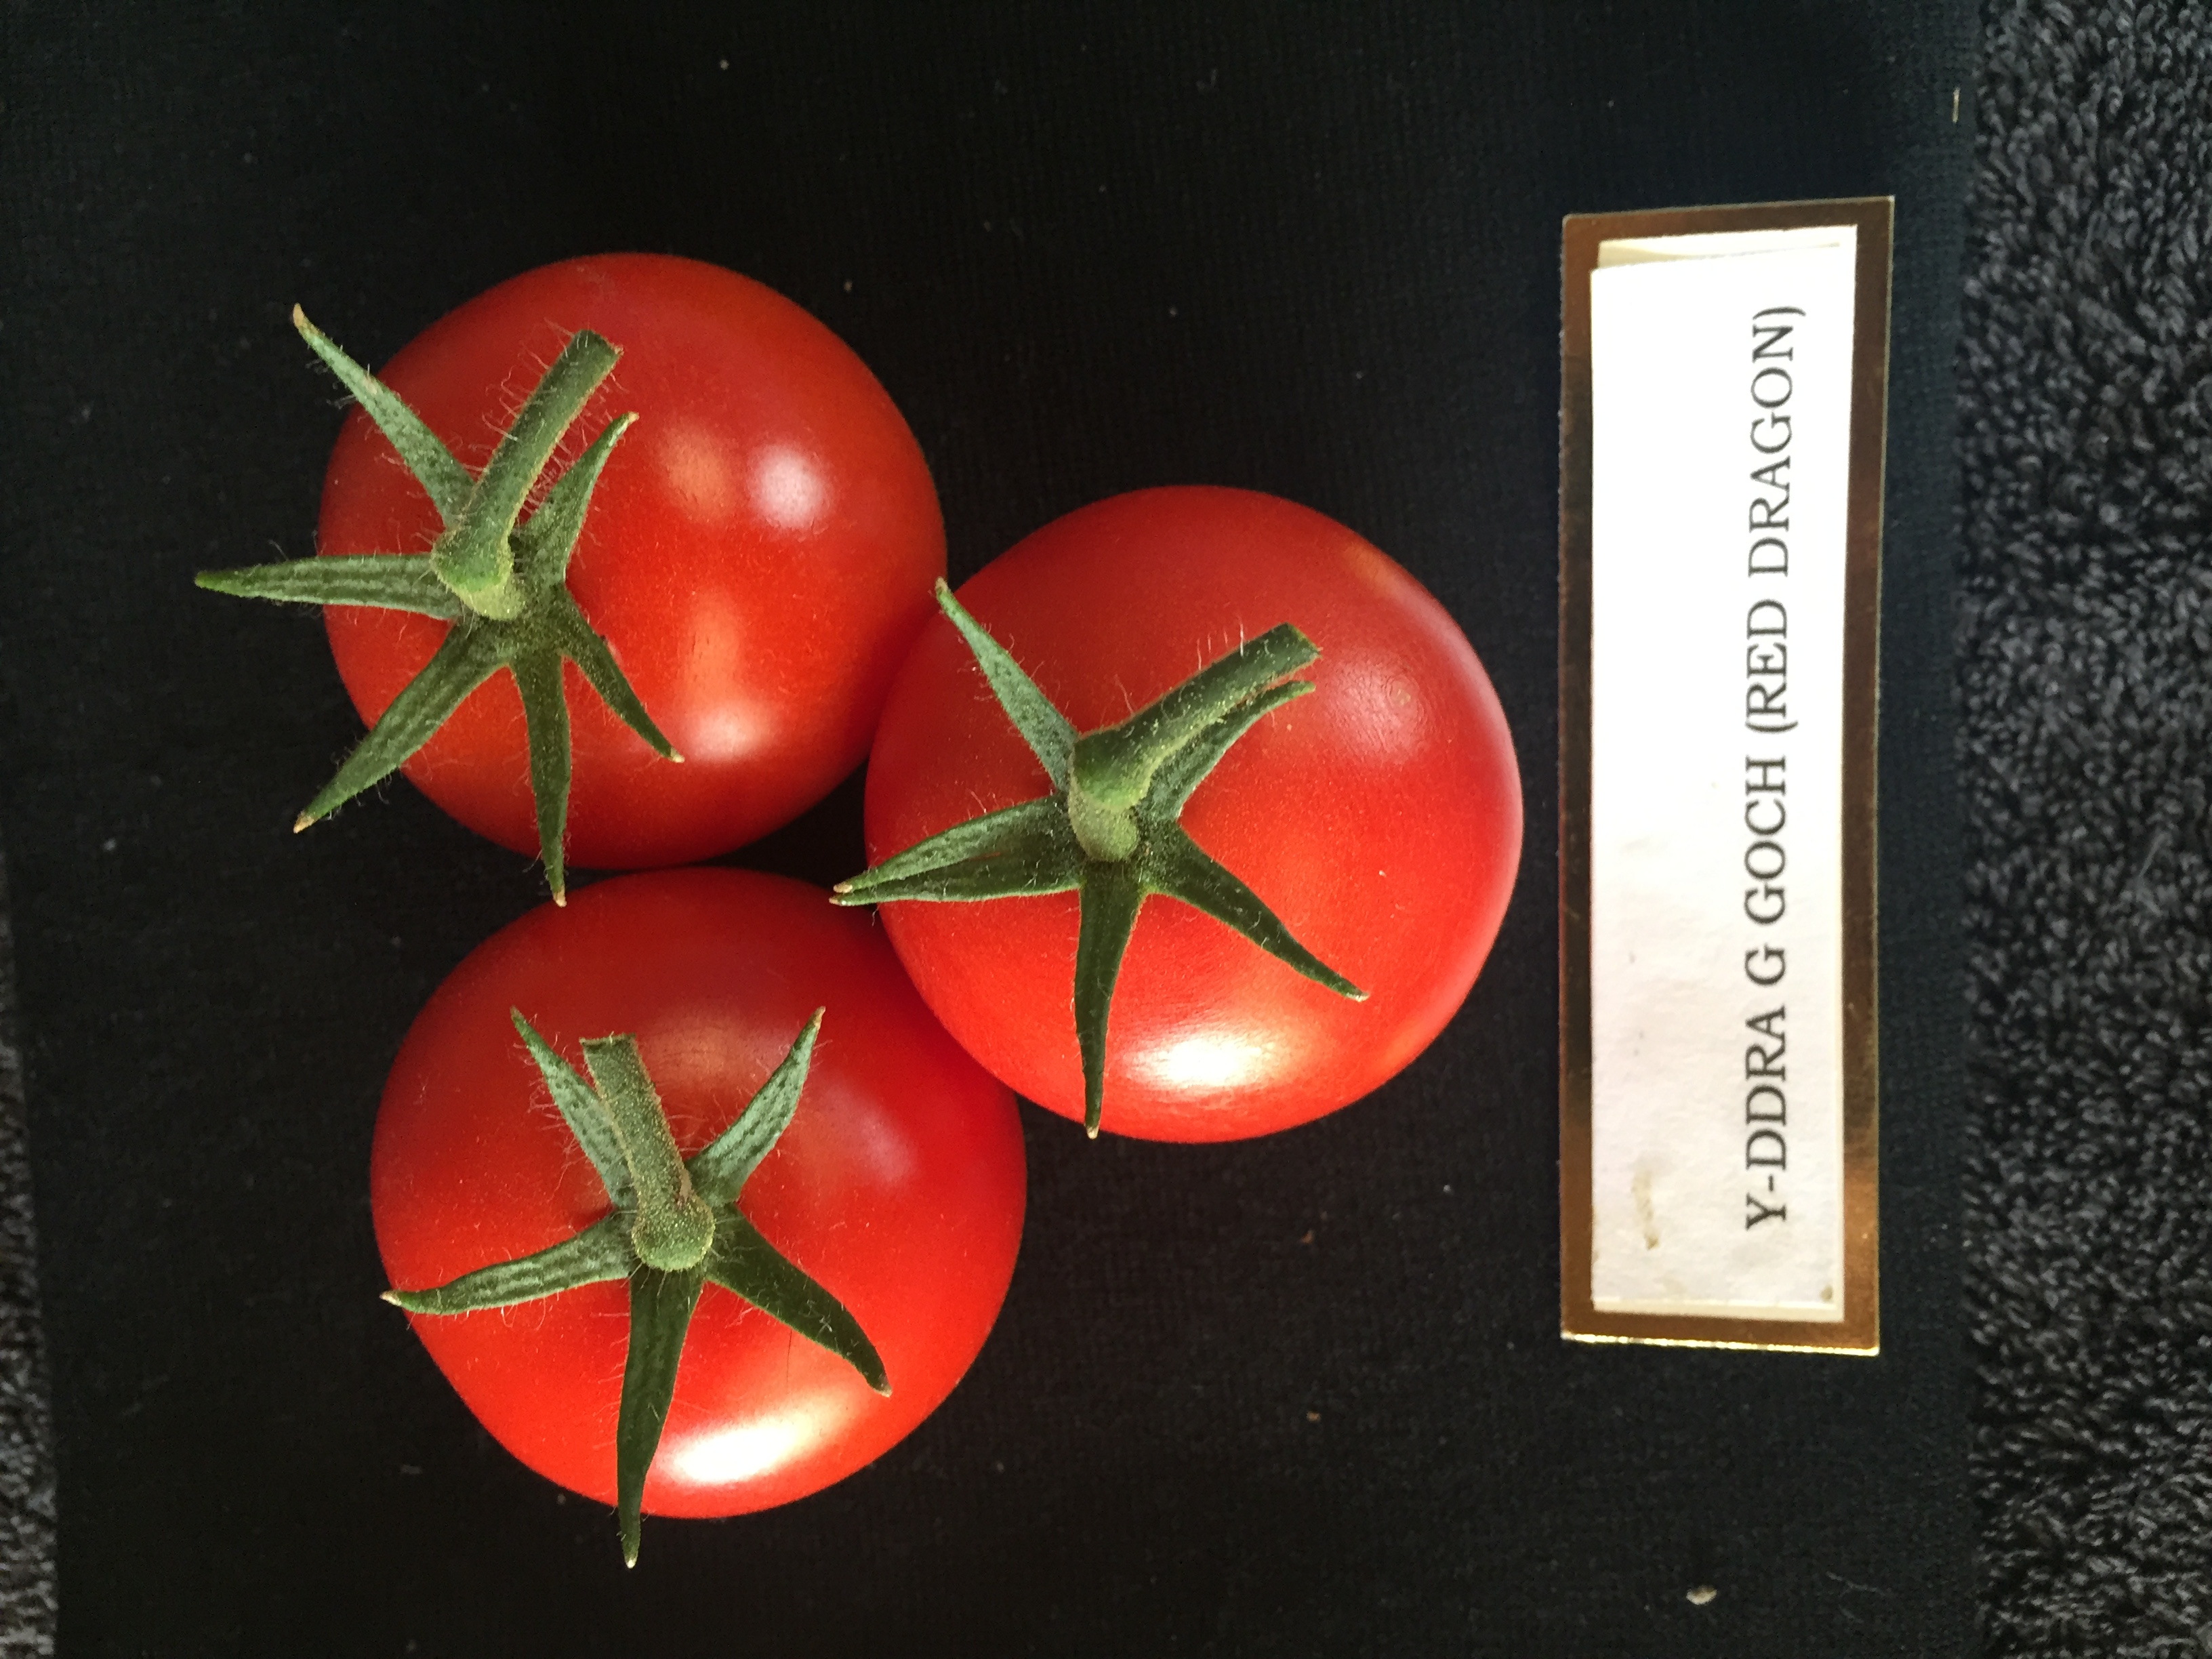 1st Prize Tomatoes, three medium